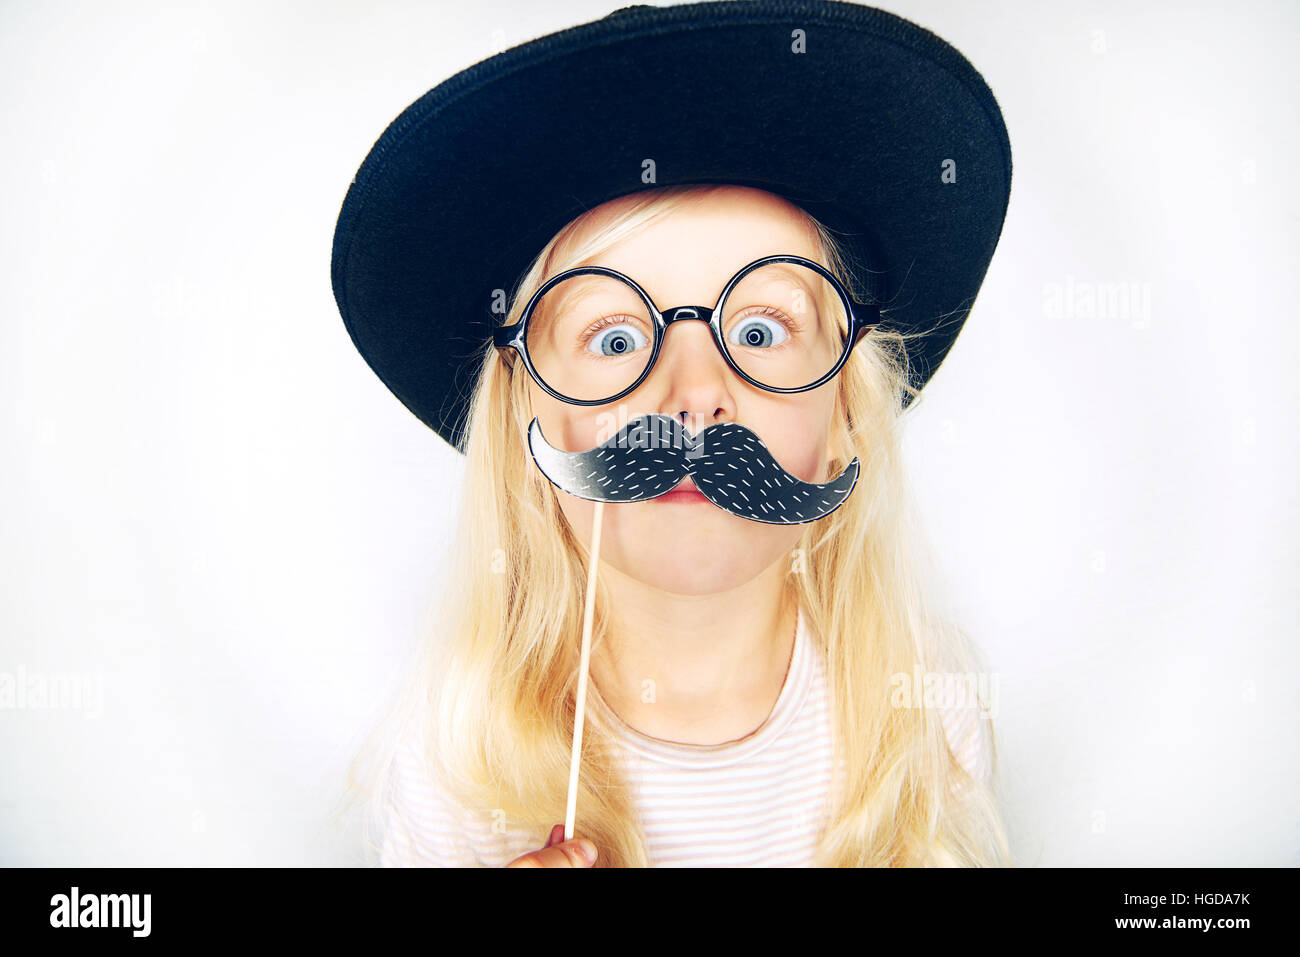 920b99c3b6c Little girl wearing black hat and glasses holding fake moustache on stick  and looking at camera